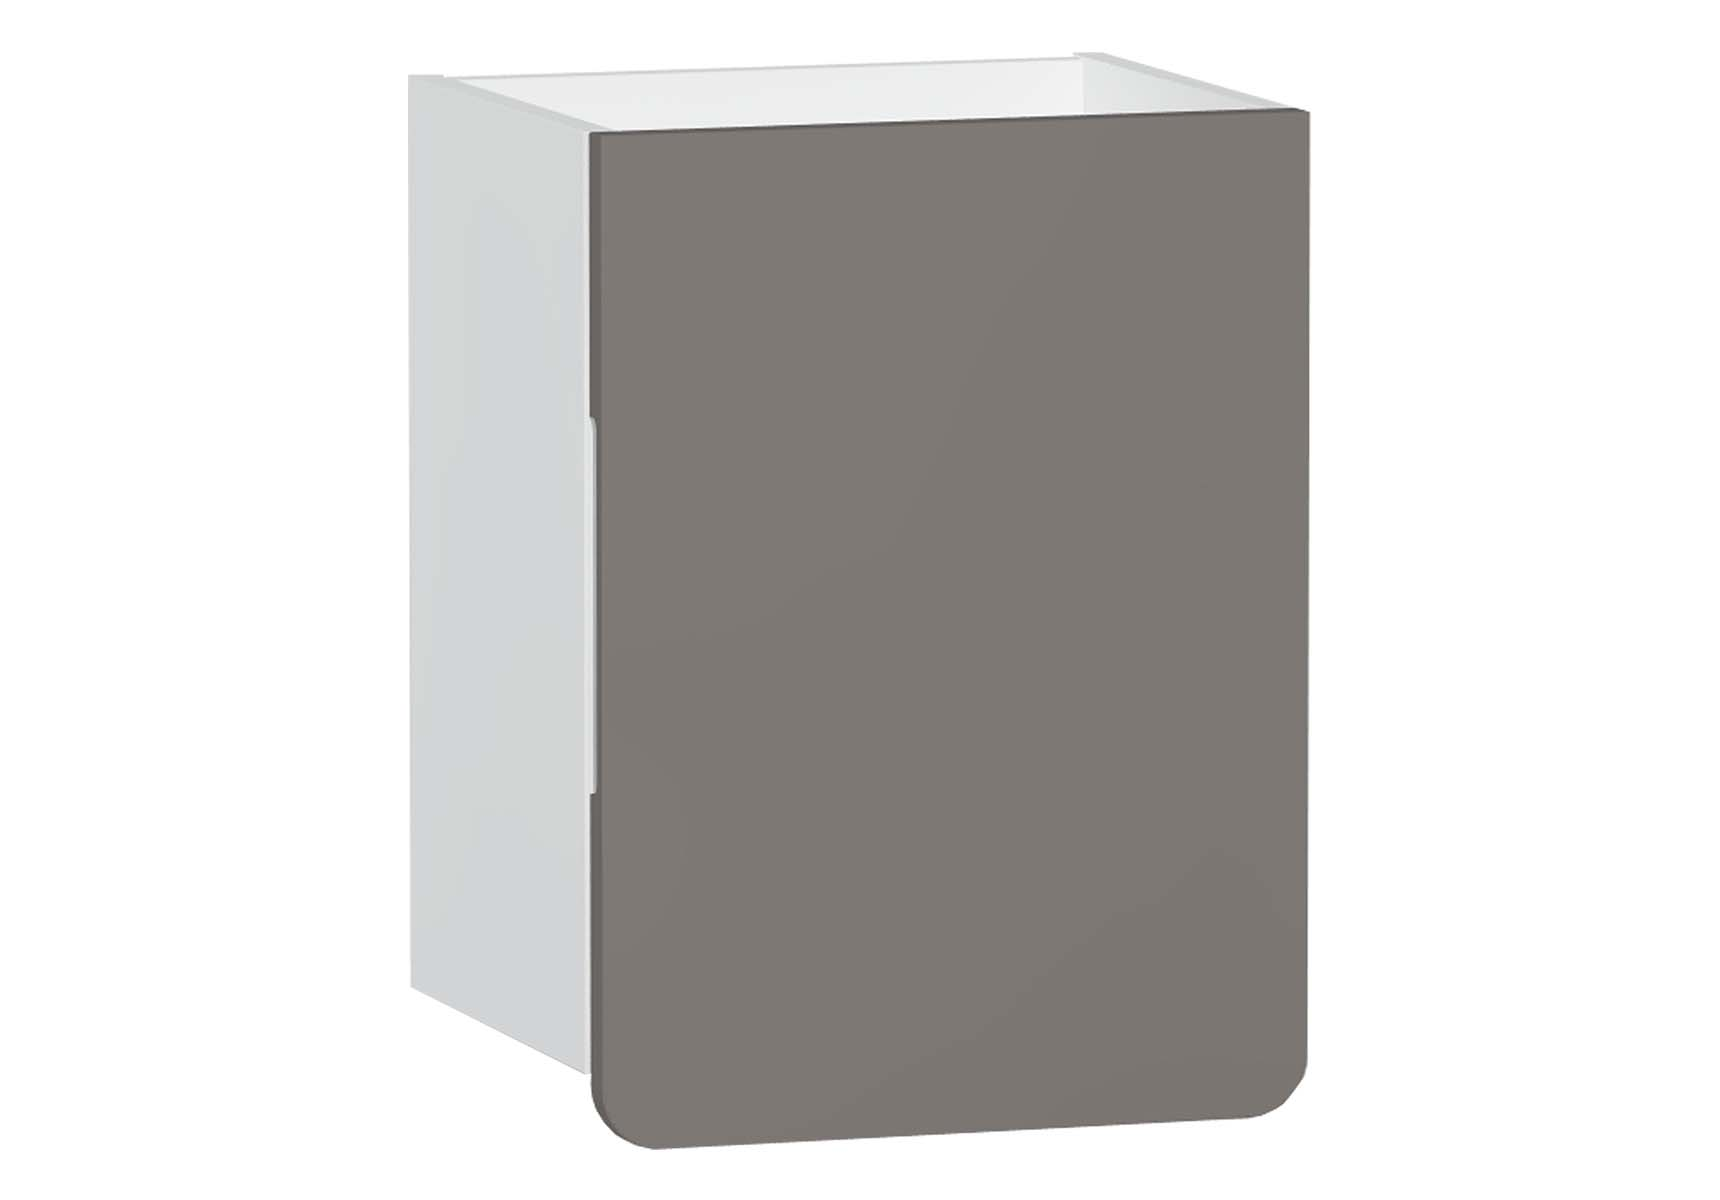 D-Light Side Unit, 40 cm, Matte White & Mink, Right